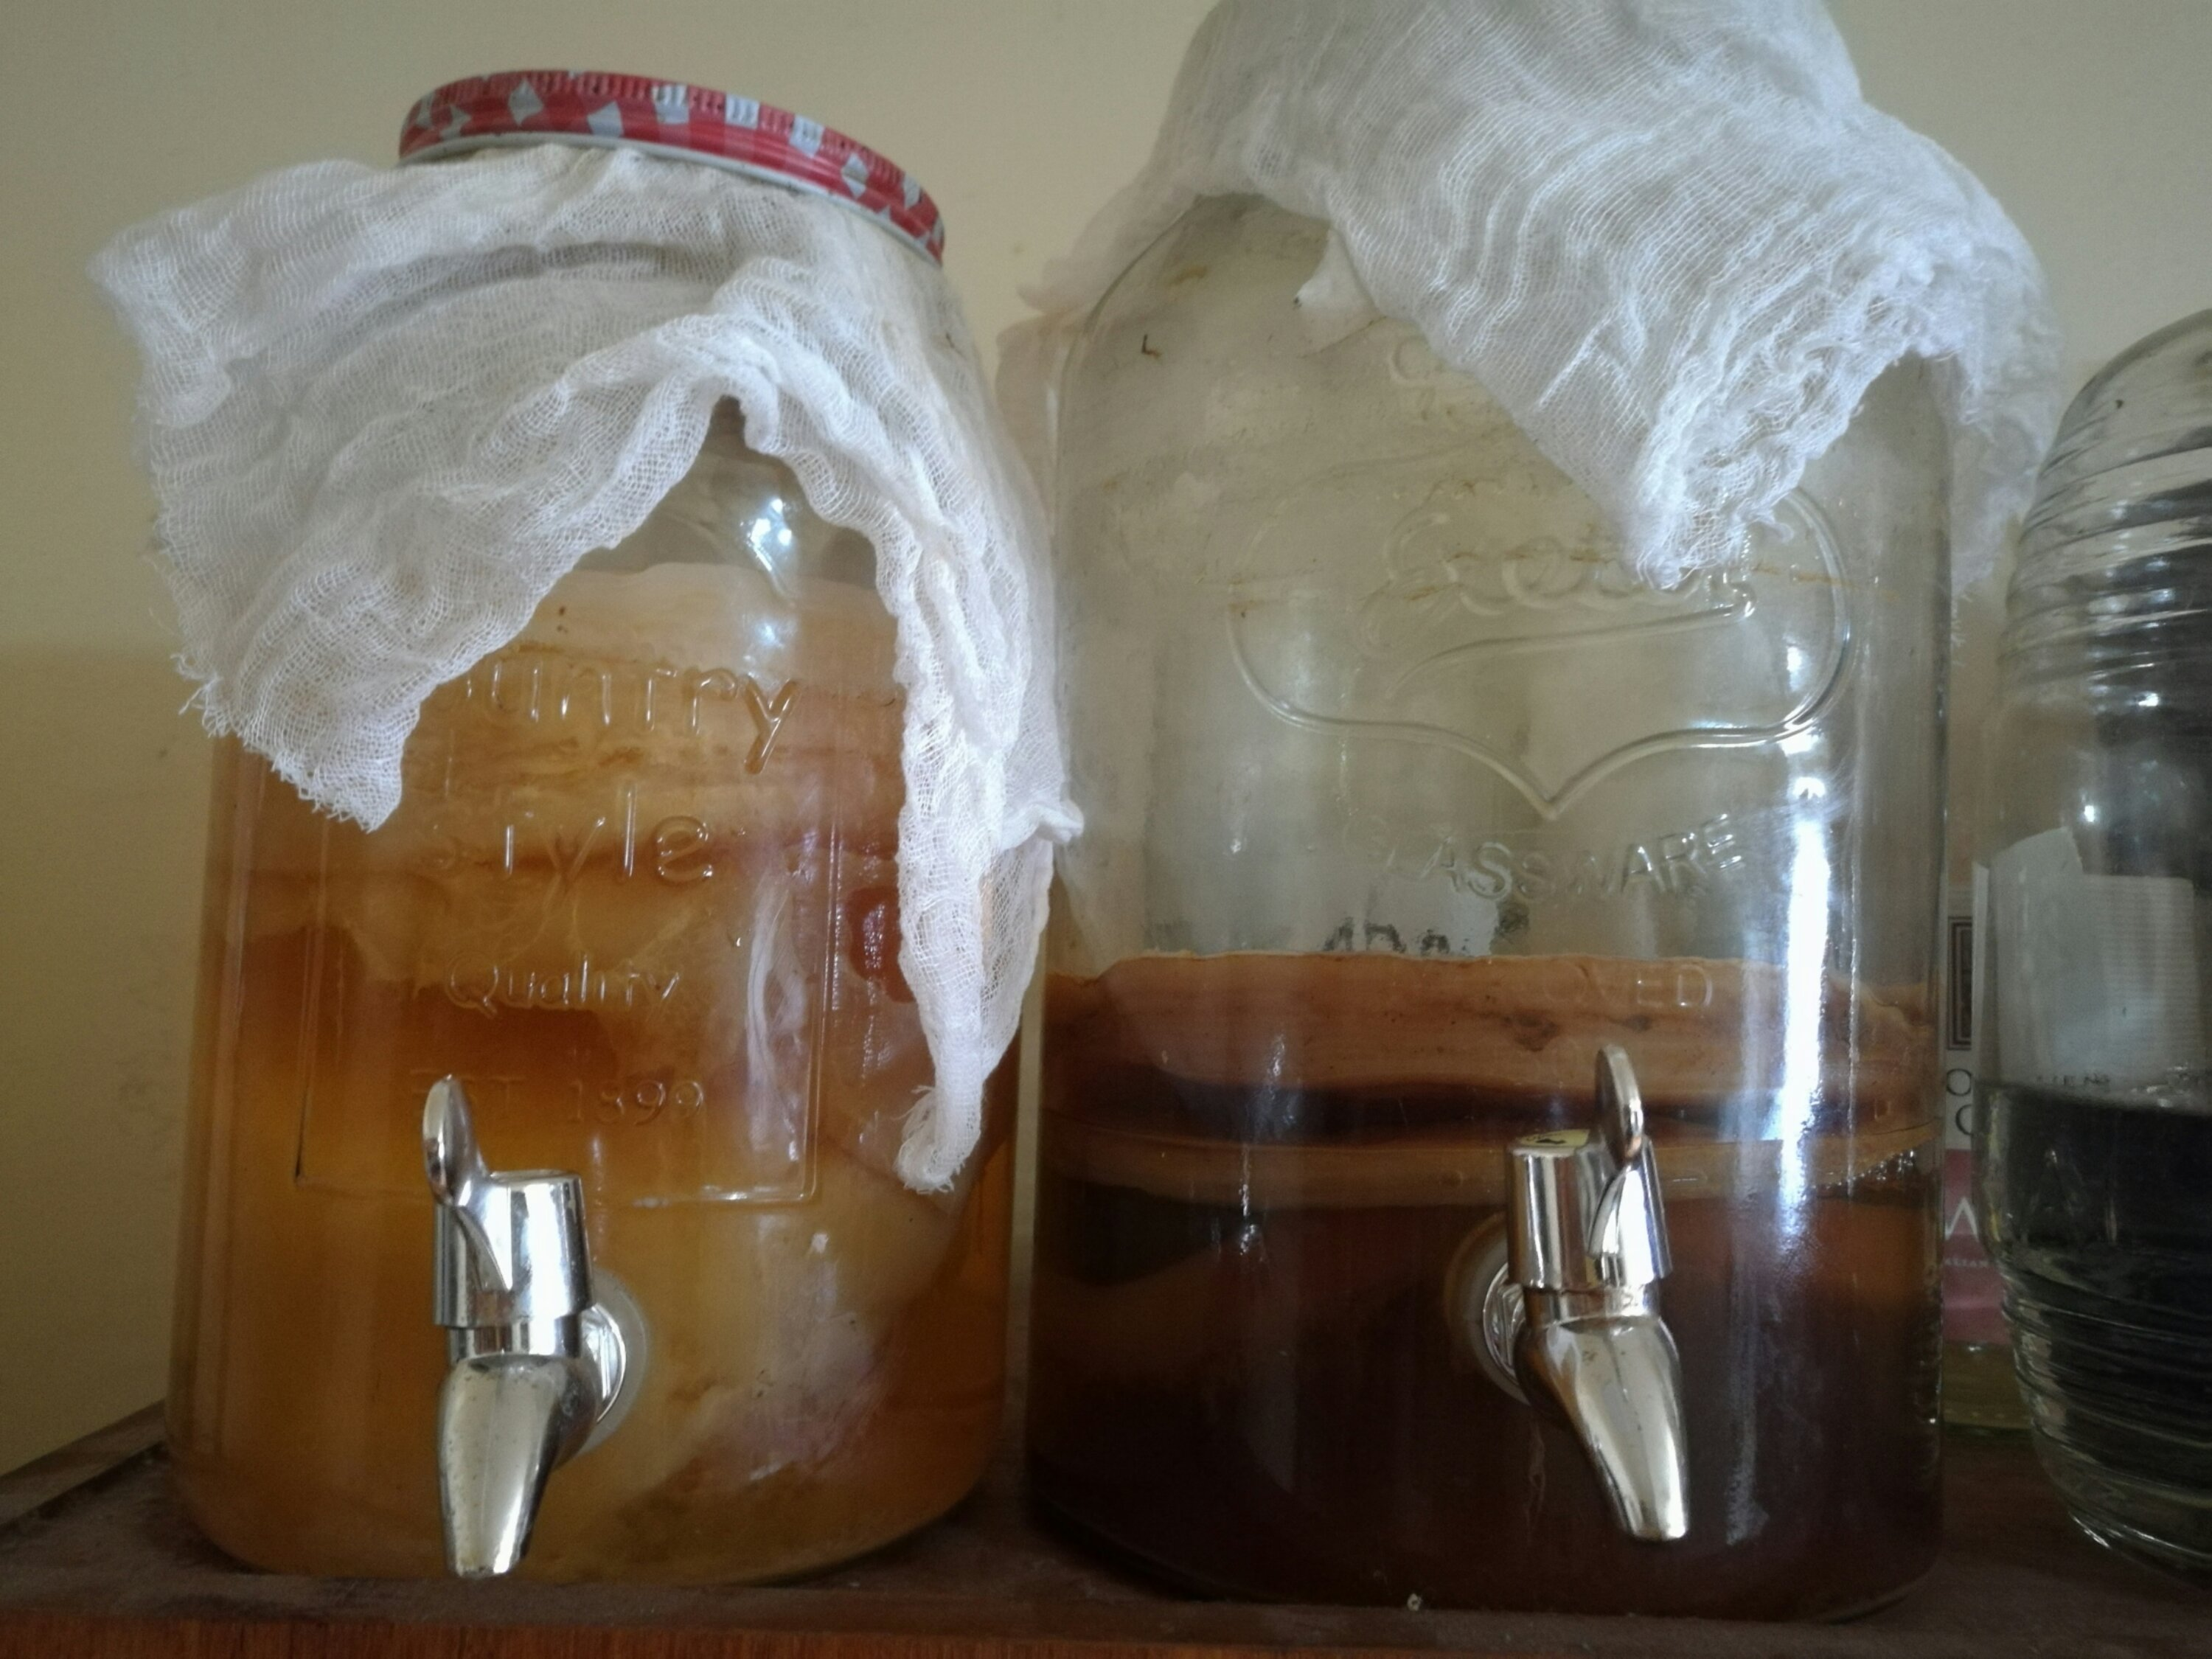 Apple cider vinegar and Kombucha